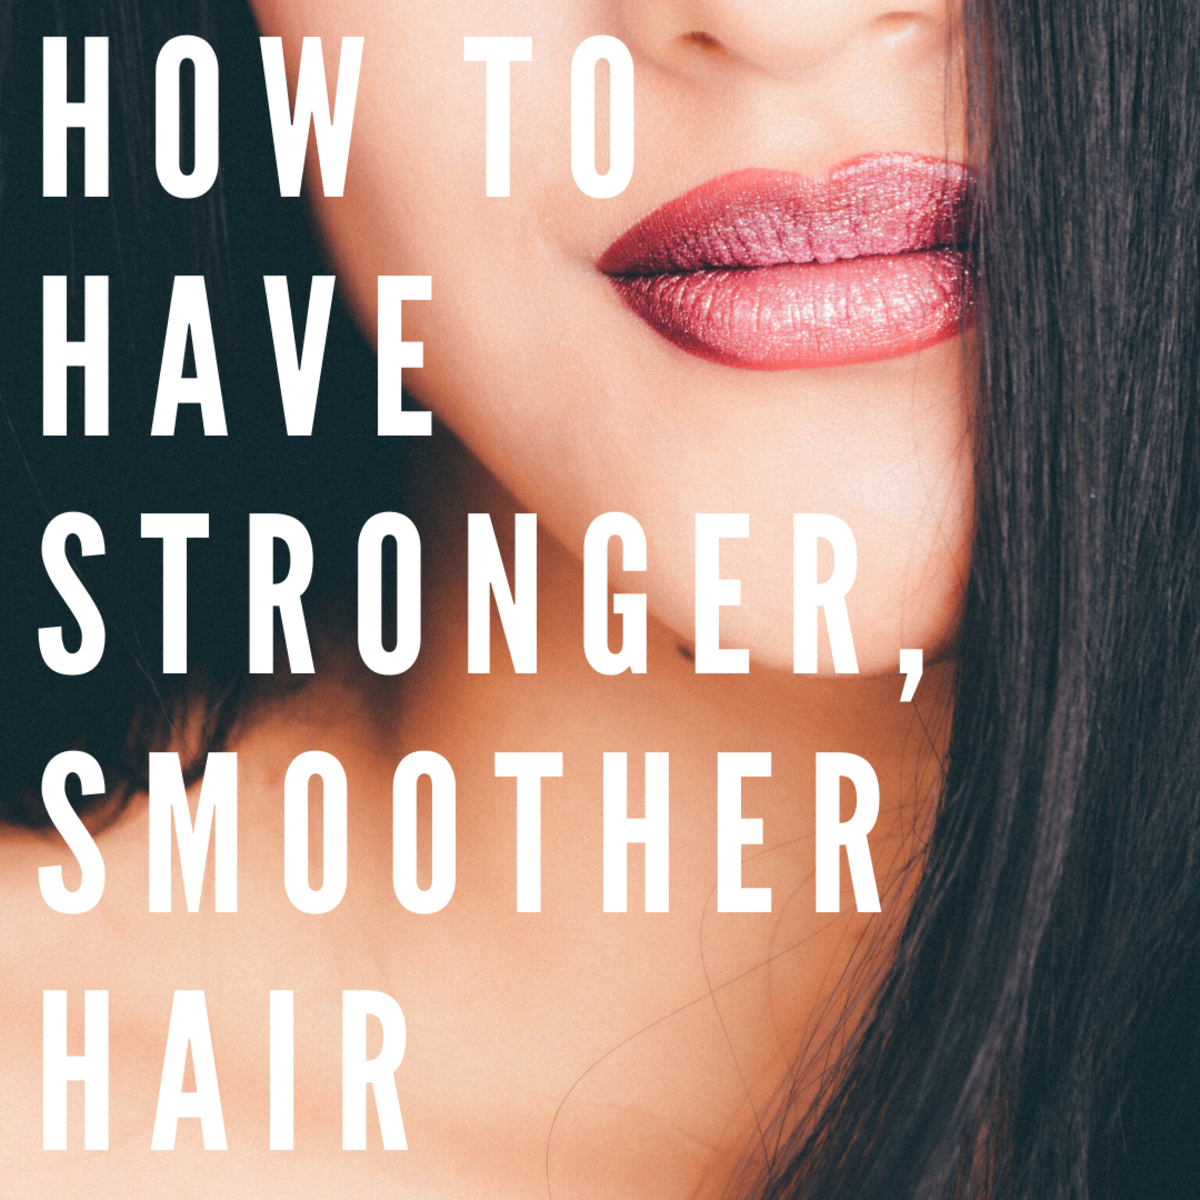 Learn a secret way to make your hair healthier.